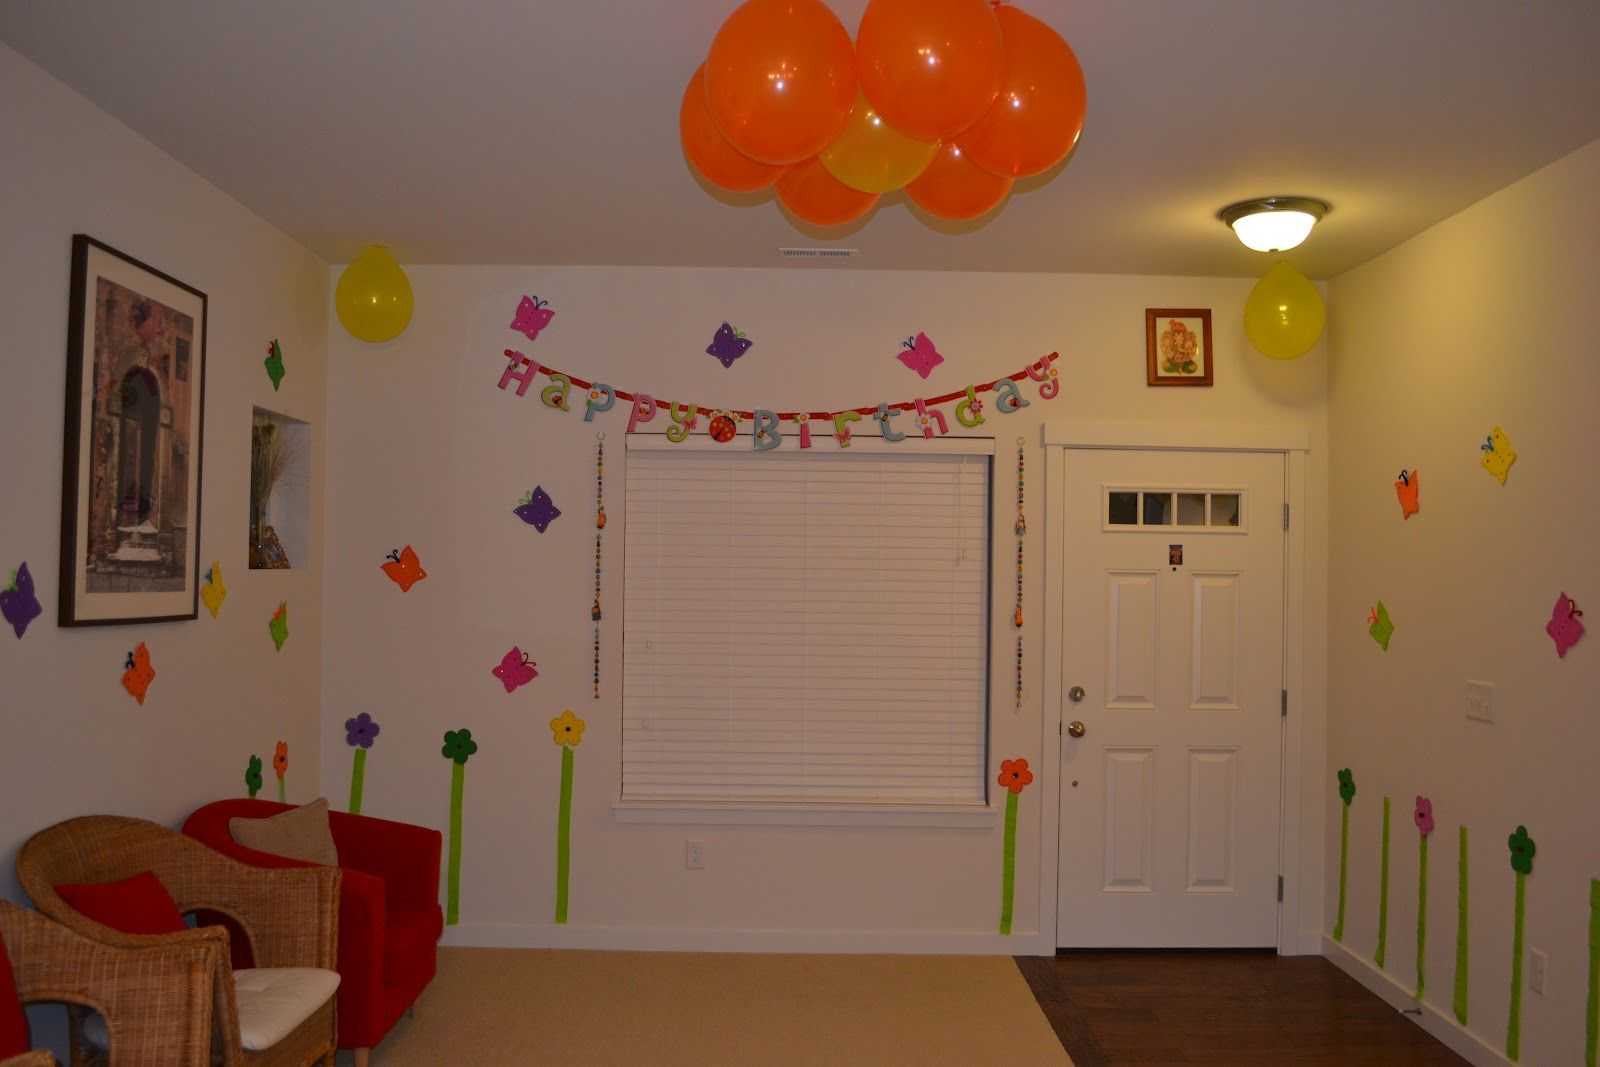 Party Decorations At Home mardi gras party decorations home and party decors Birthday Party Decoration Ideas At Home